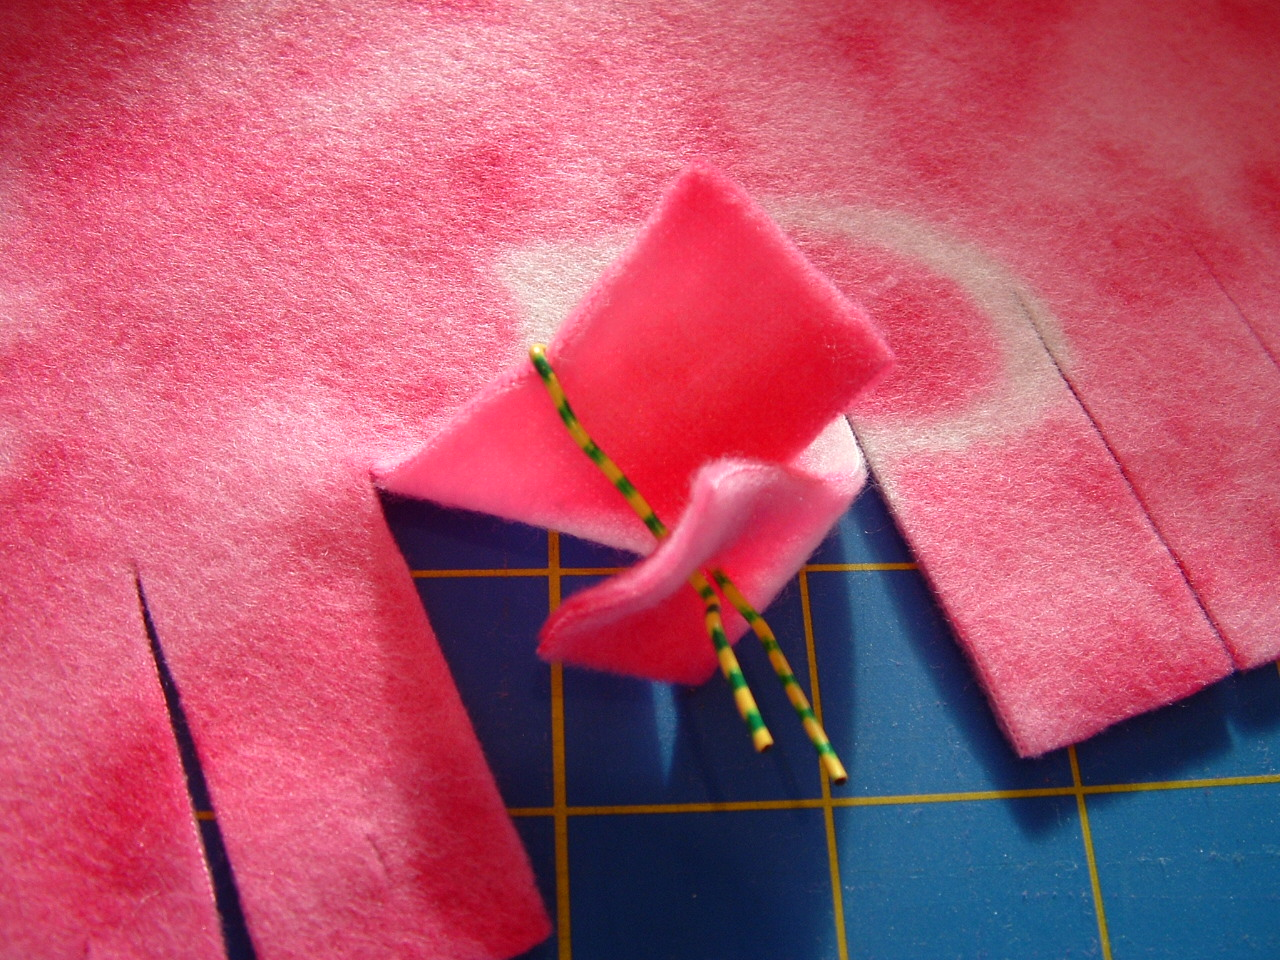 Pieces By Polly Single Layer No Sew Braided Fleece Blankets Tutorial Knots Fishing Knot Tying Diagrams Crafty Ideas Pinterest